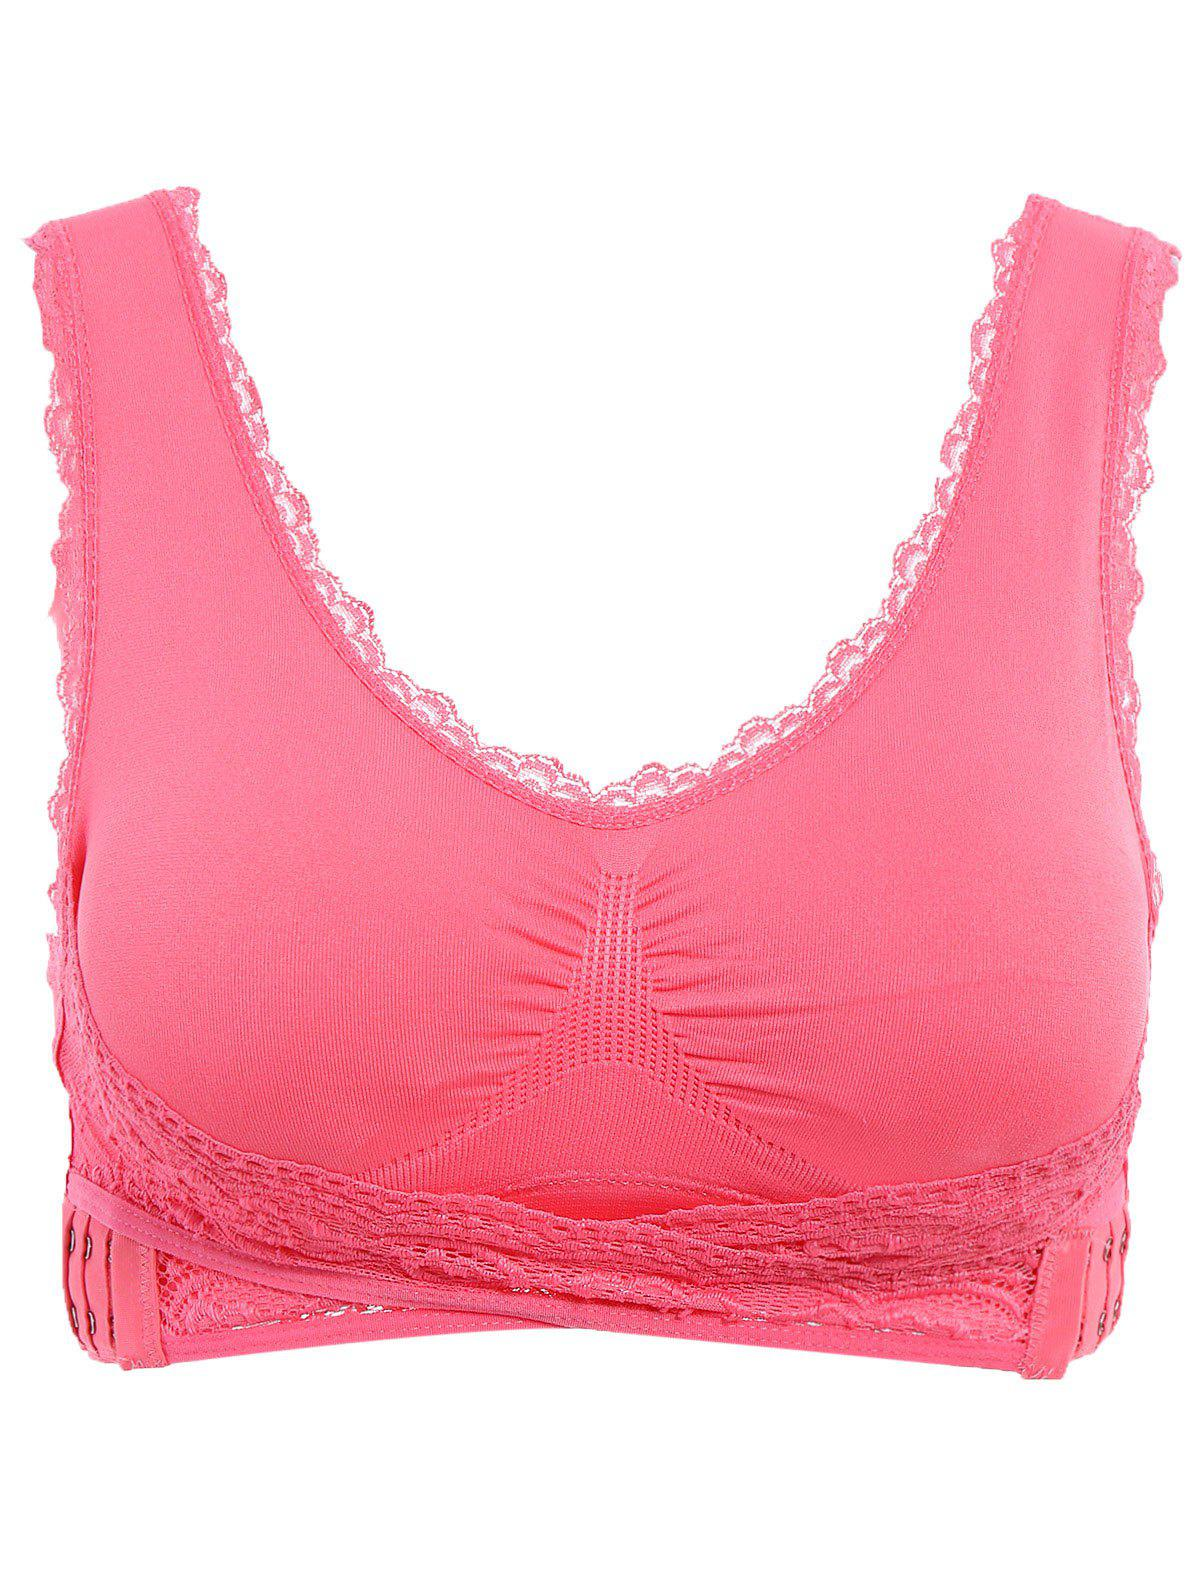 Graceful V Neck Solid Color Lace Splicing Push Up Women's Wrap Sports Bra - WATERMELON RED M